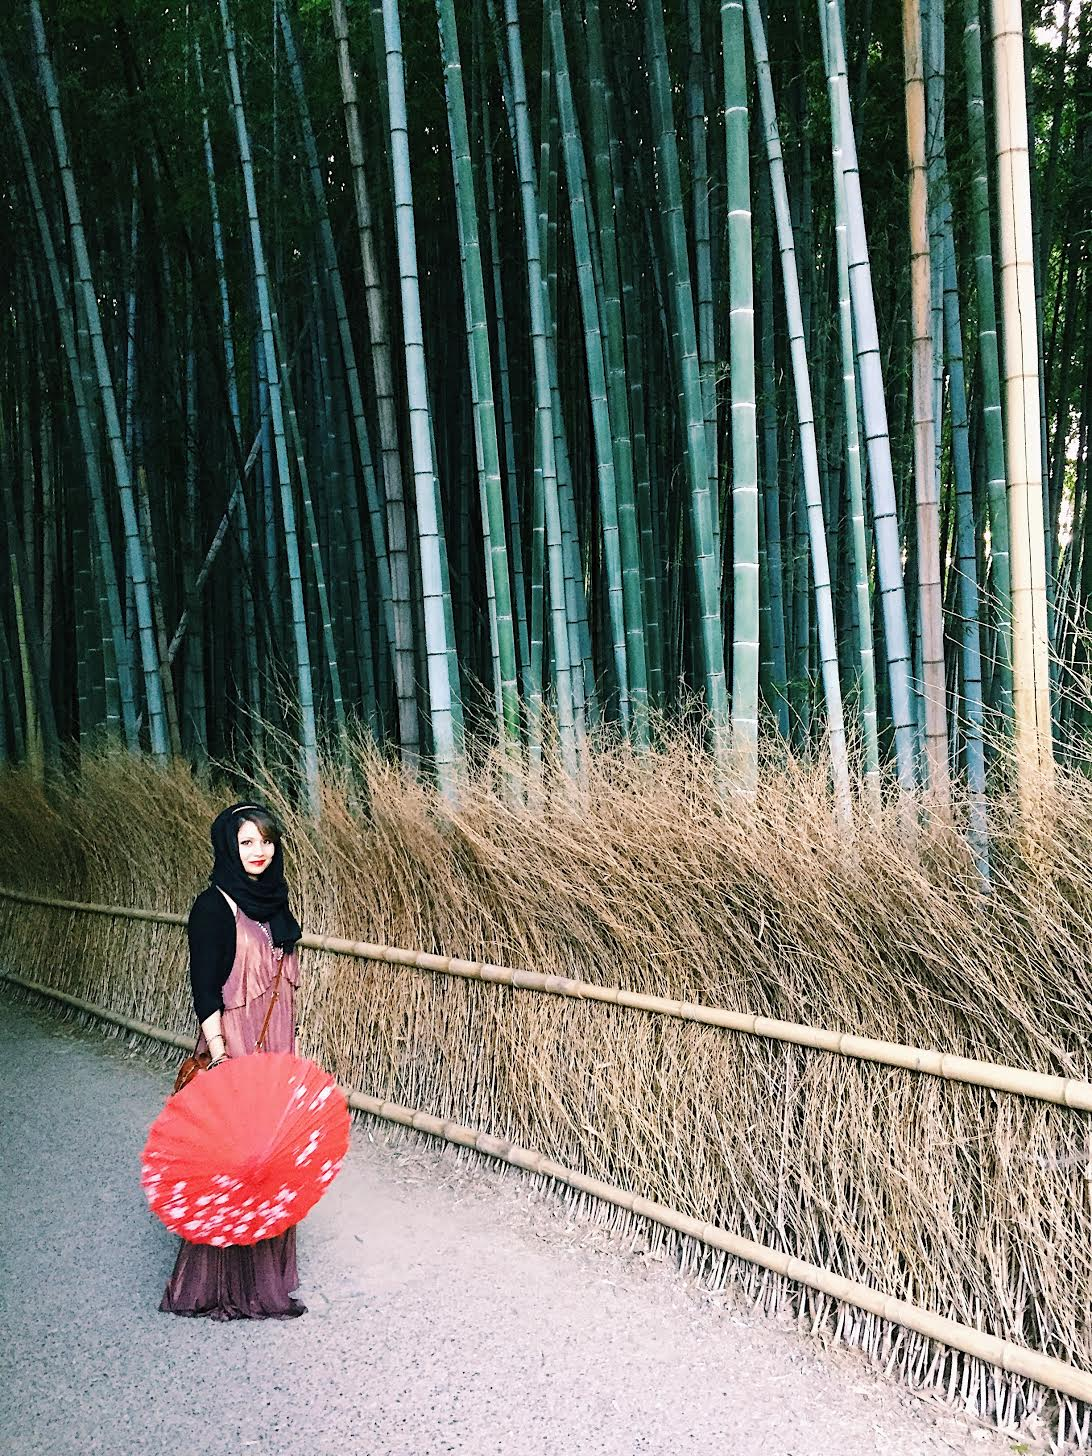 Muslim-travel-recommendations-Kyoto-Bamboo-Forest.jpg